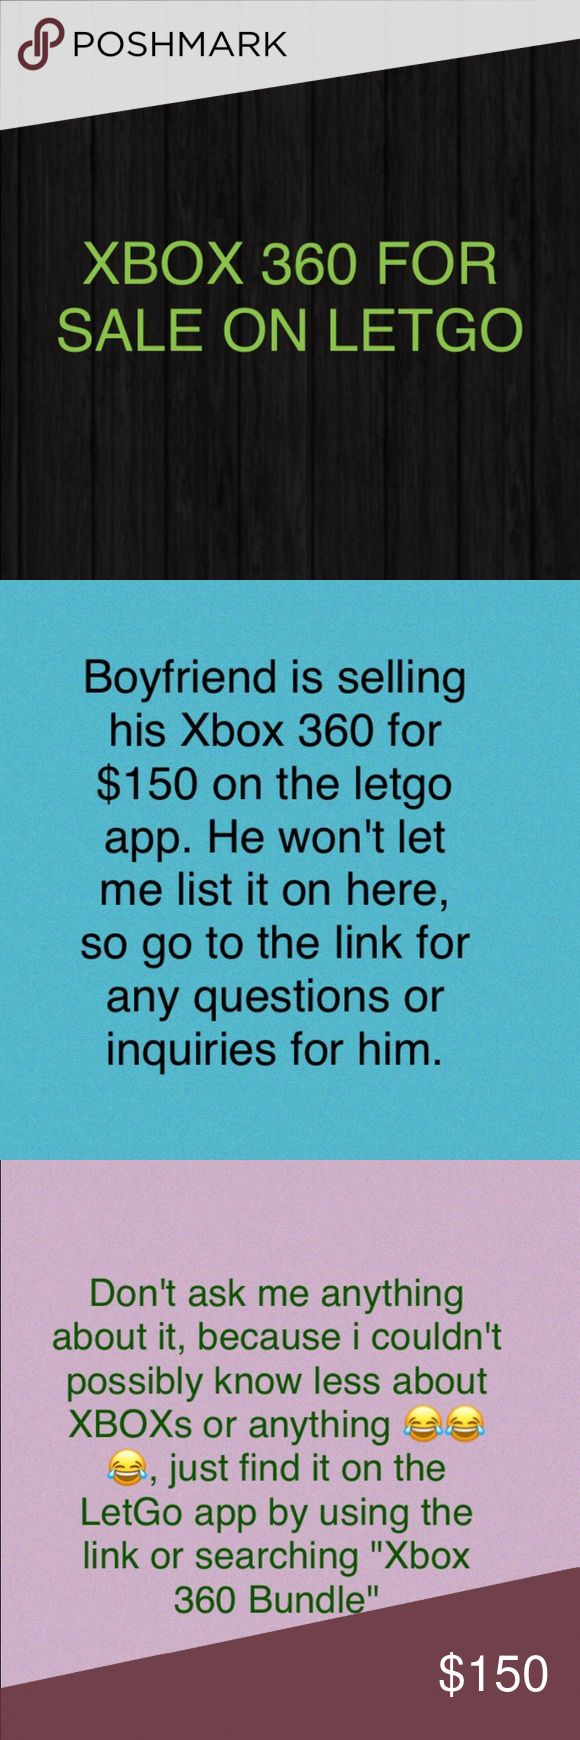 !!DO NOT PURCHASE THIS LISTING!! XBOX 360 ON LETGO ••••••So i'm not sure if i'm allowed to post this on here (please tell me if not, i'll delete the listing immediately! i don't want to break any rules)•••••••   But basically my boyfriend is selling an Xbox 360 on the letgo app. it is with all the cords, 14 games, 2 controllers, 2 rechargeable batteries and 2 chargers all bundled  for $150!!! he no longer uses it and would like some money to spend on family christmas presents. The link is…